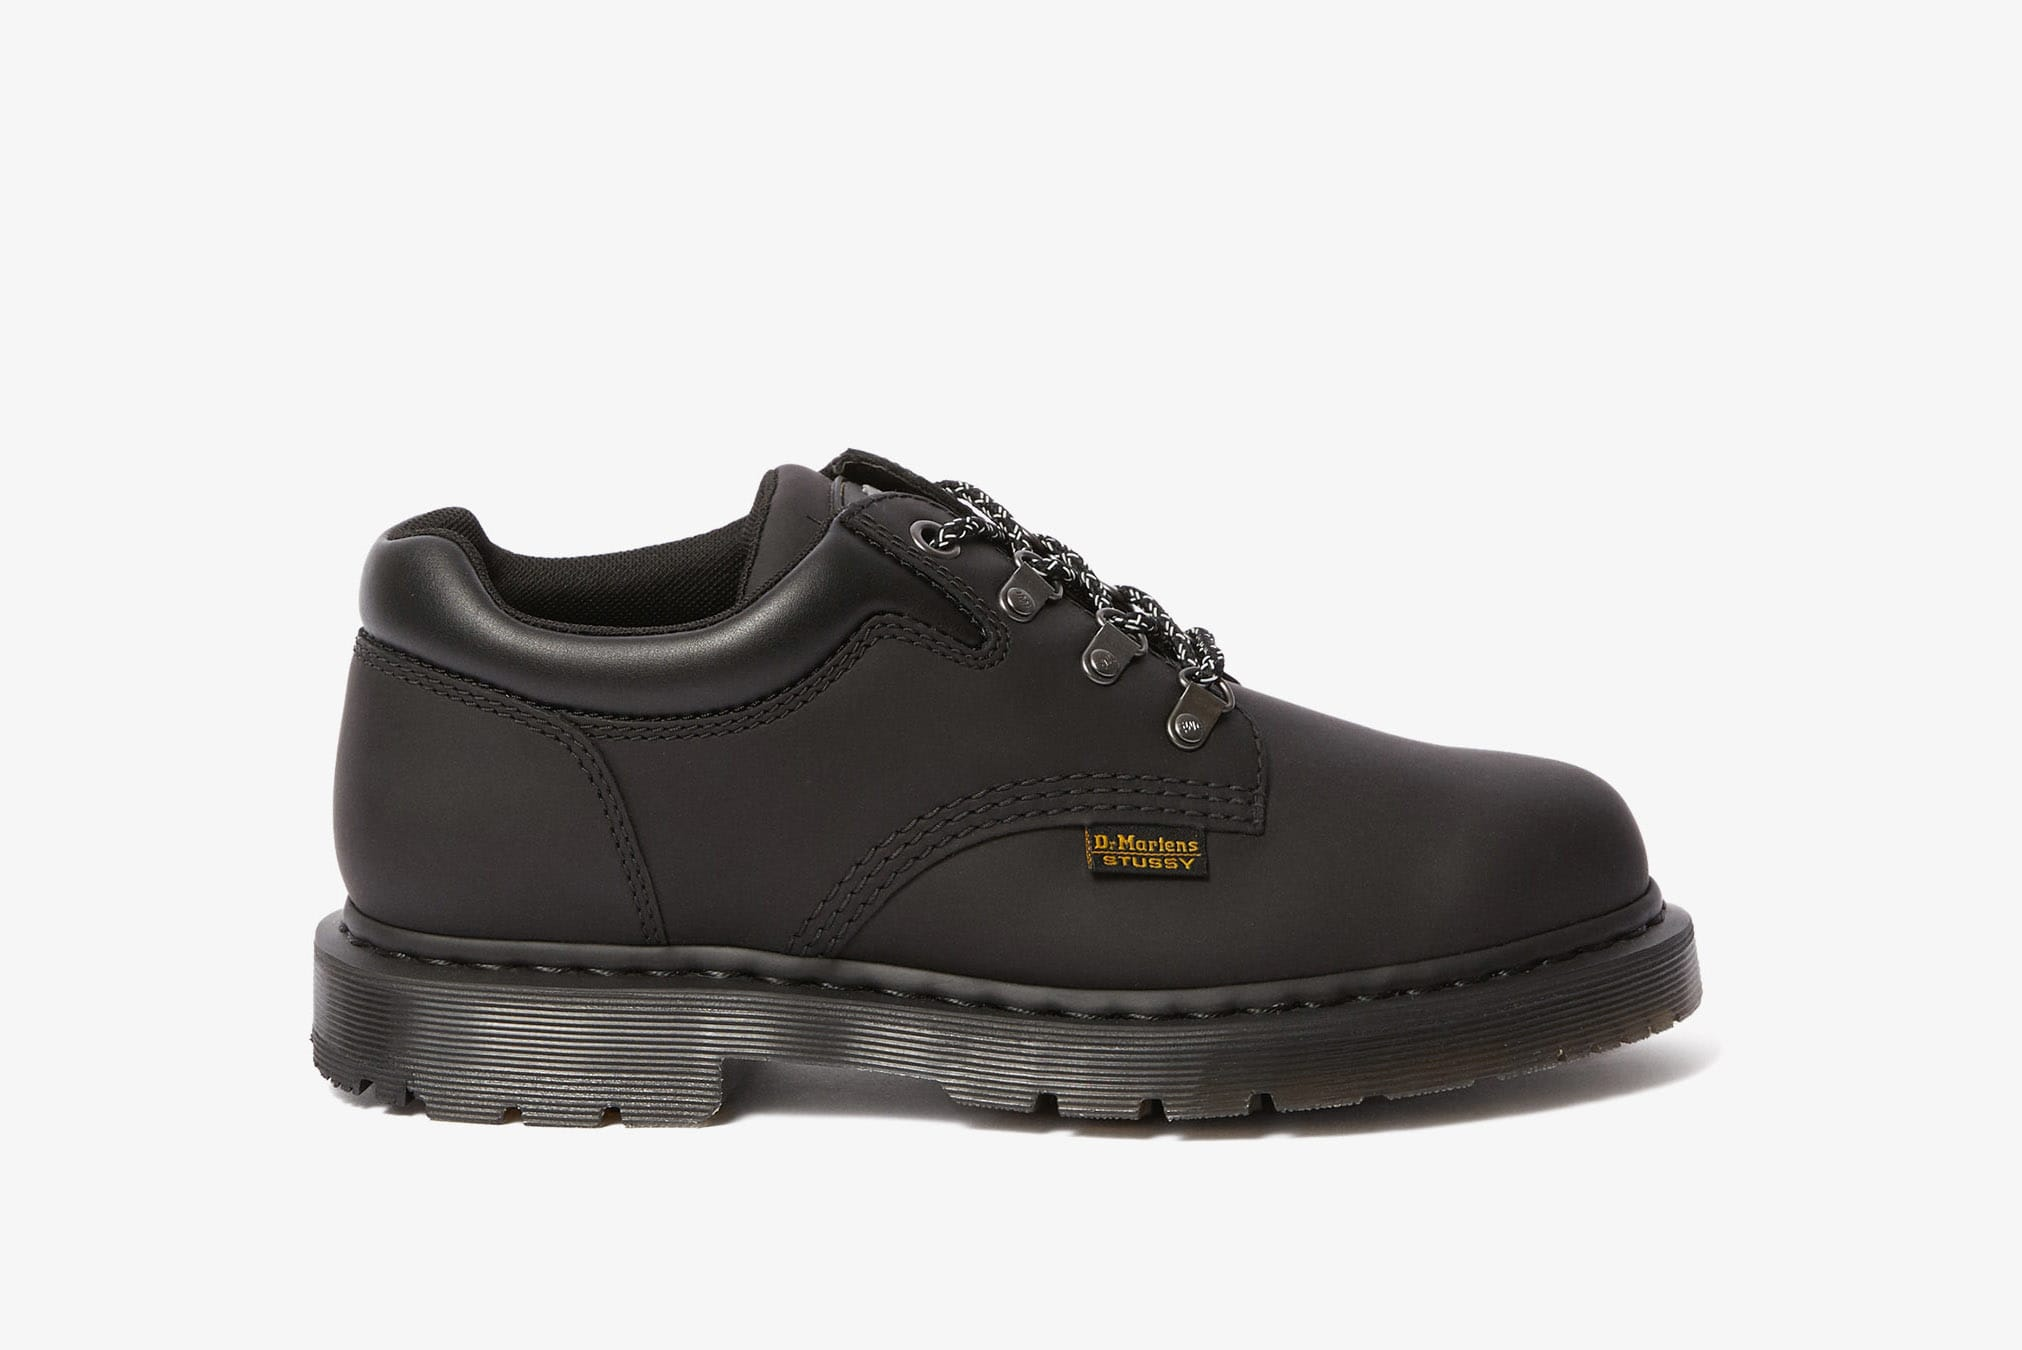 Dr. Martens x Stüssy 8053 HY Boot - 25915001